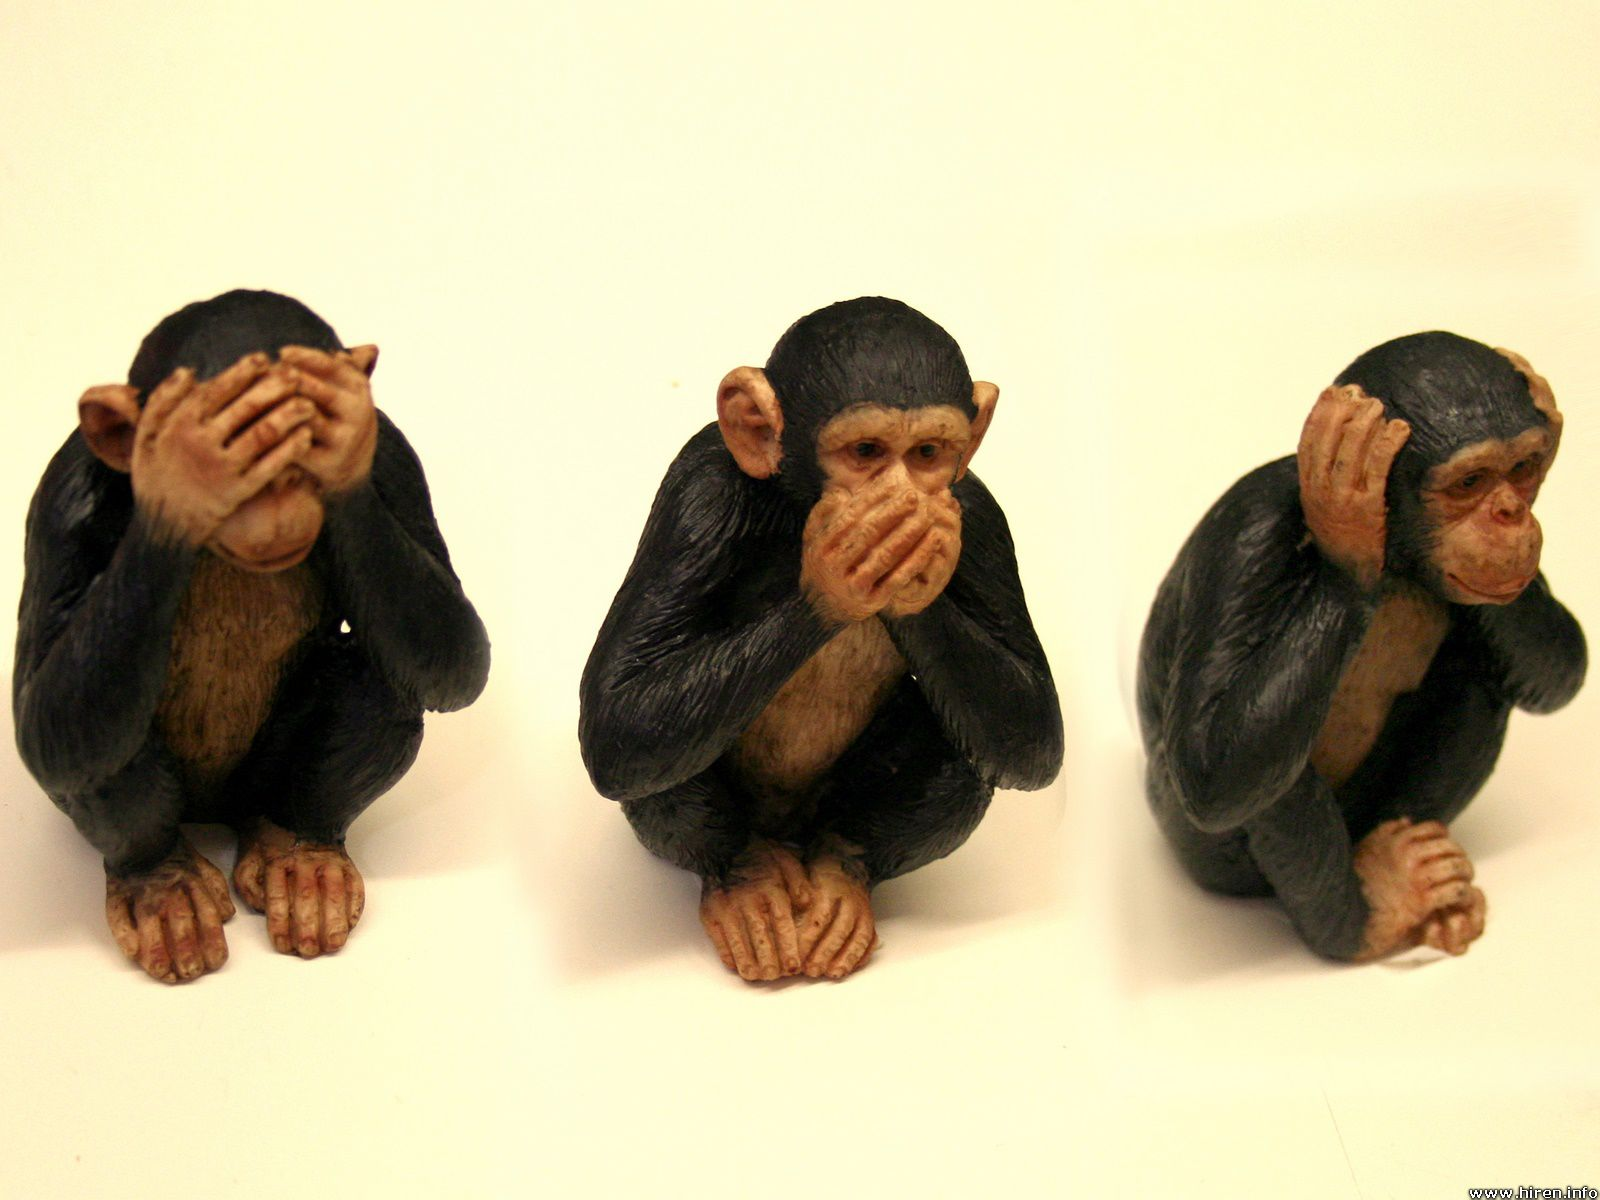 an analysis of the well known saying monkey see monkey do At the end is an animal idioms quiz to check your understanding idiom meaning example sentence monkey see, monkey do: our one-year-old is saying bad words now i told my husband, monkey see, monkey do.